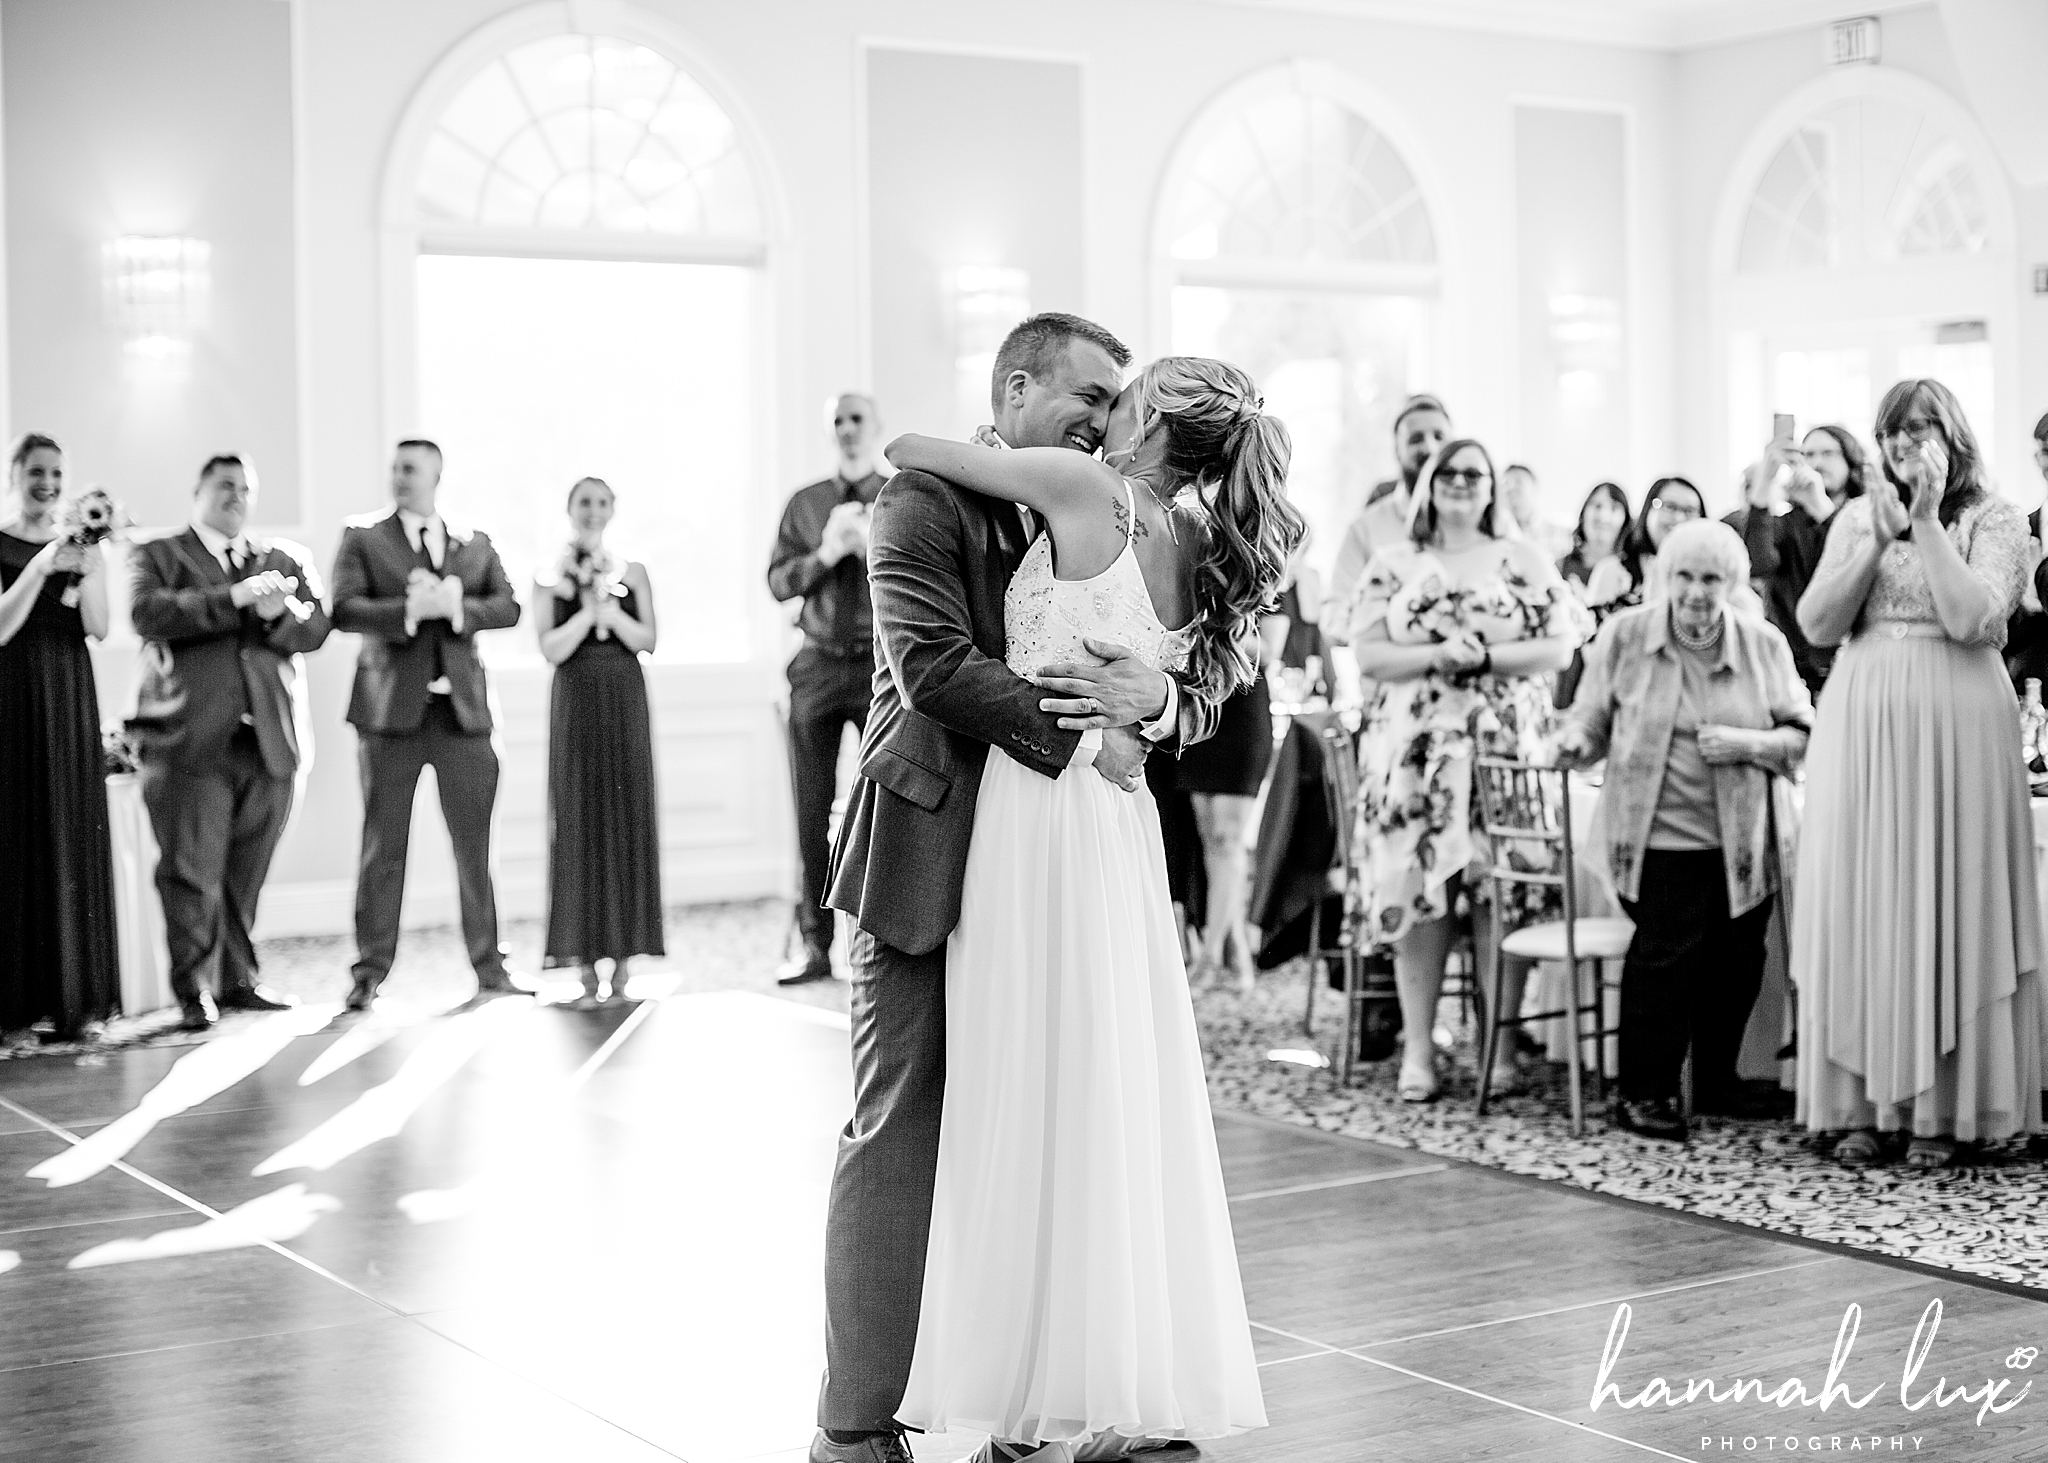 Hannah Lux Photography_1682